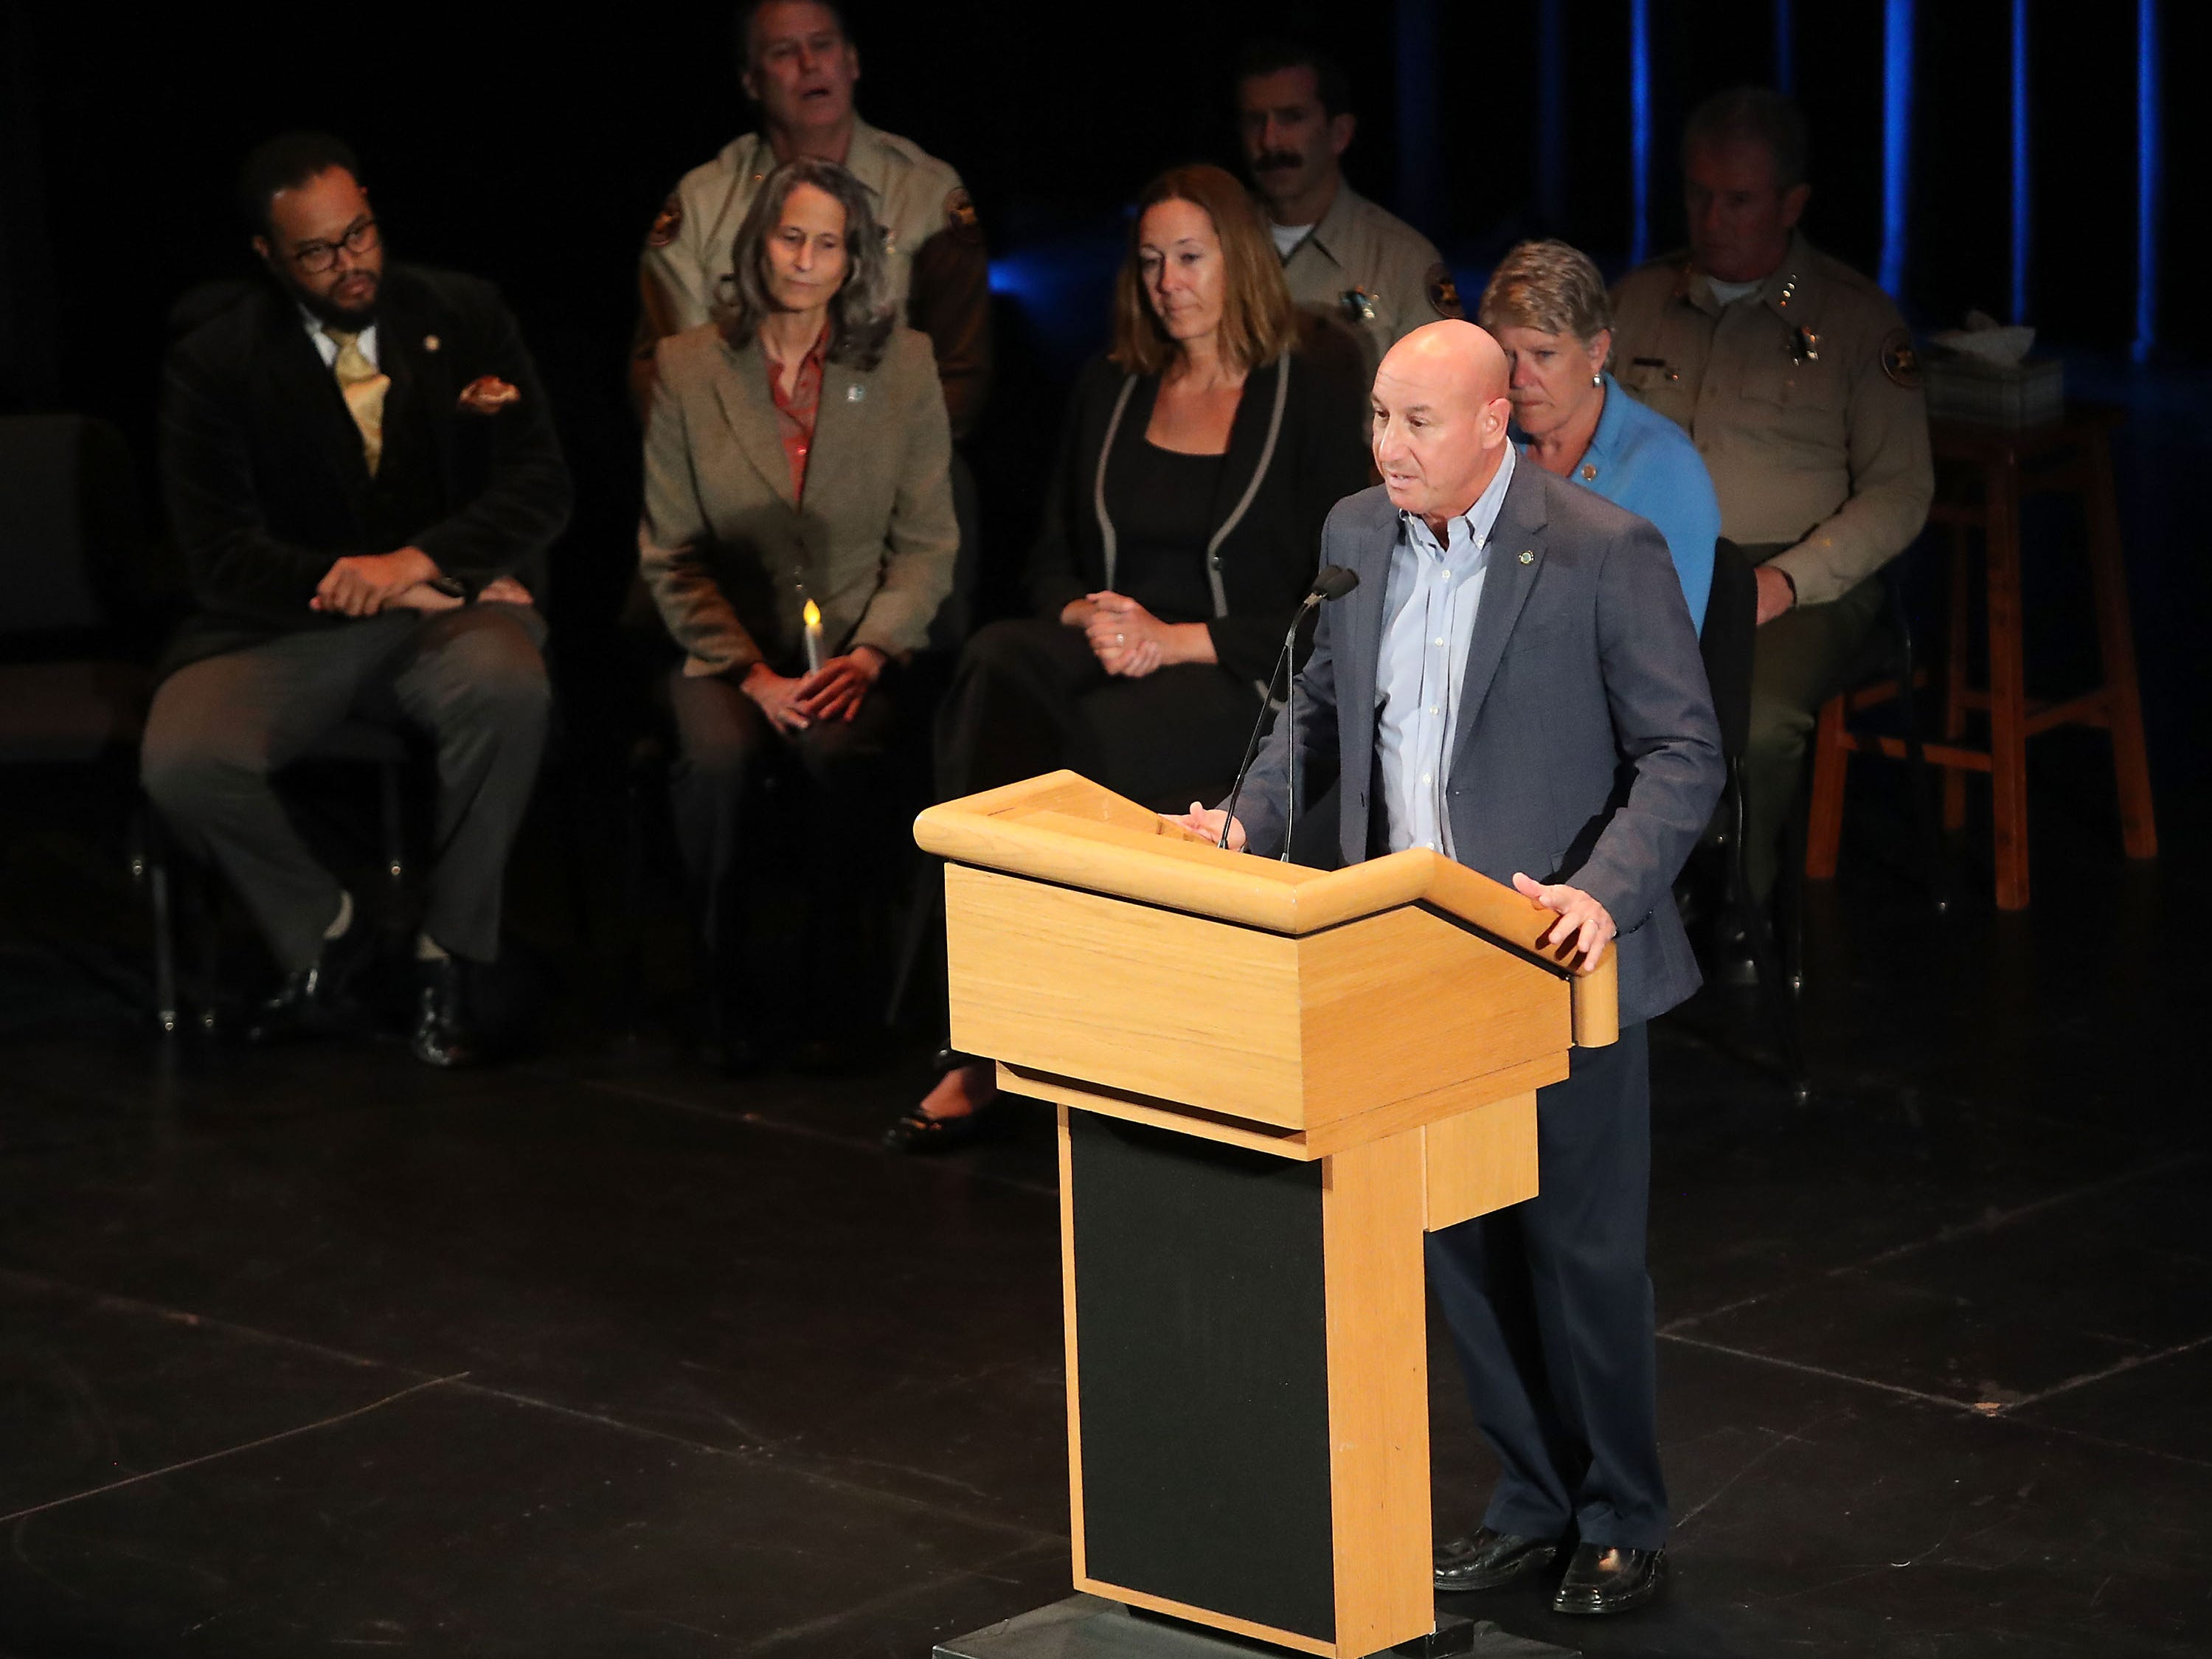 Mayor Andy Fox speaks at a vigil for the shooting victims at the Thousand Oaks Civic Arts Plaza on Nov. 8, 2018, in Thousand Oaks, Calif.